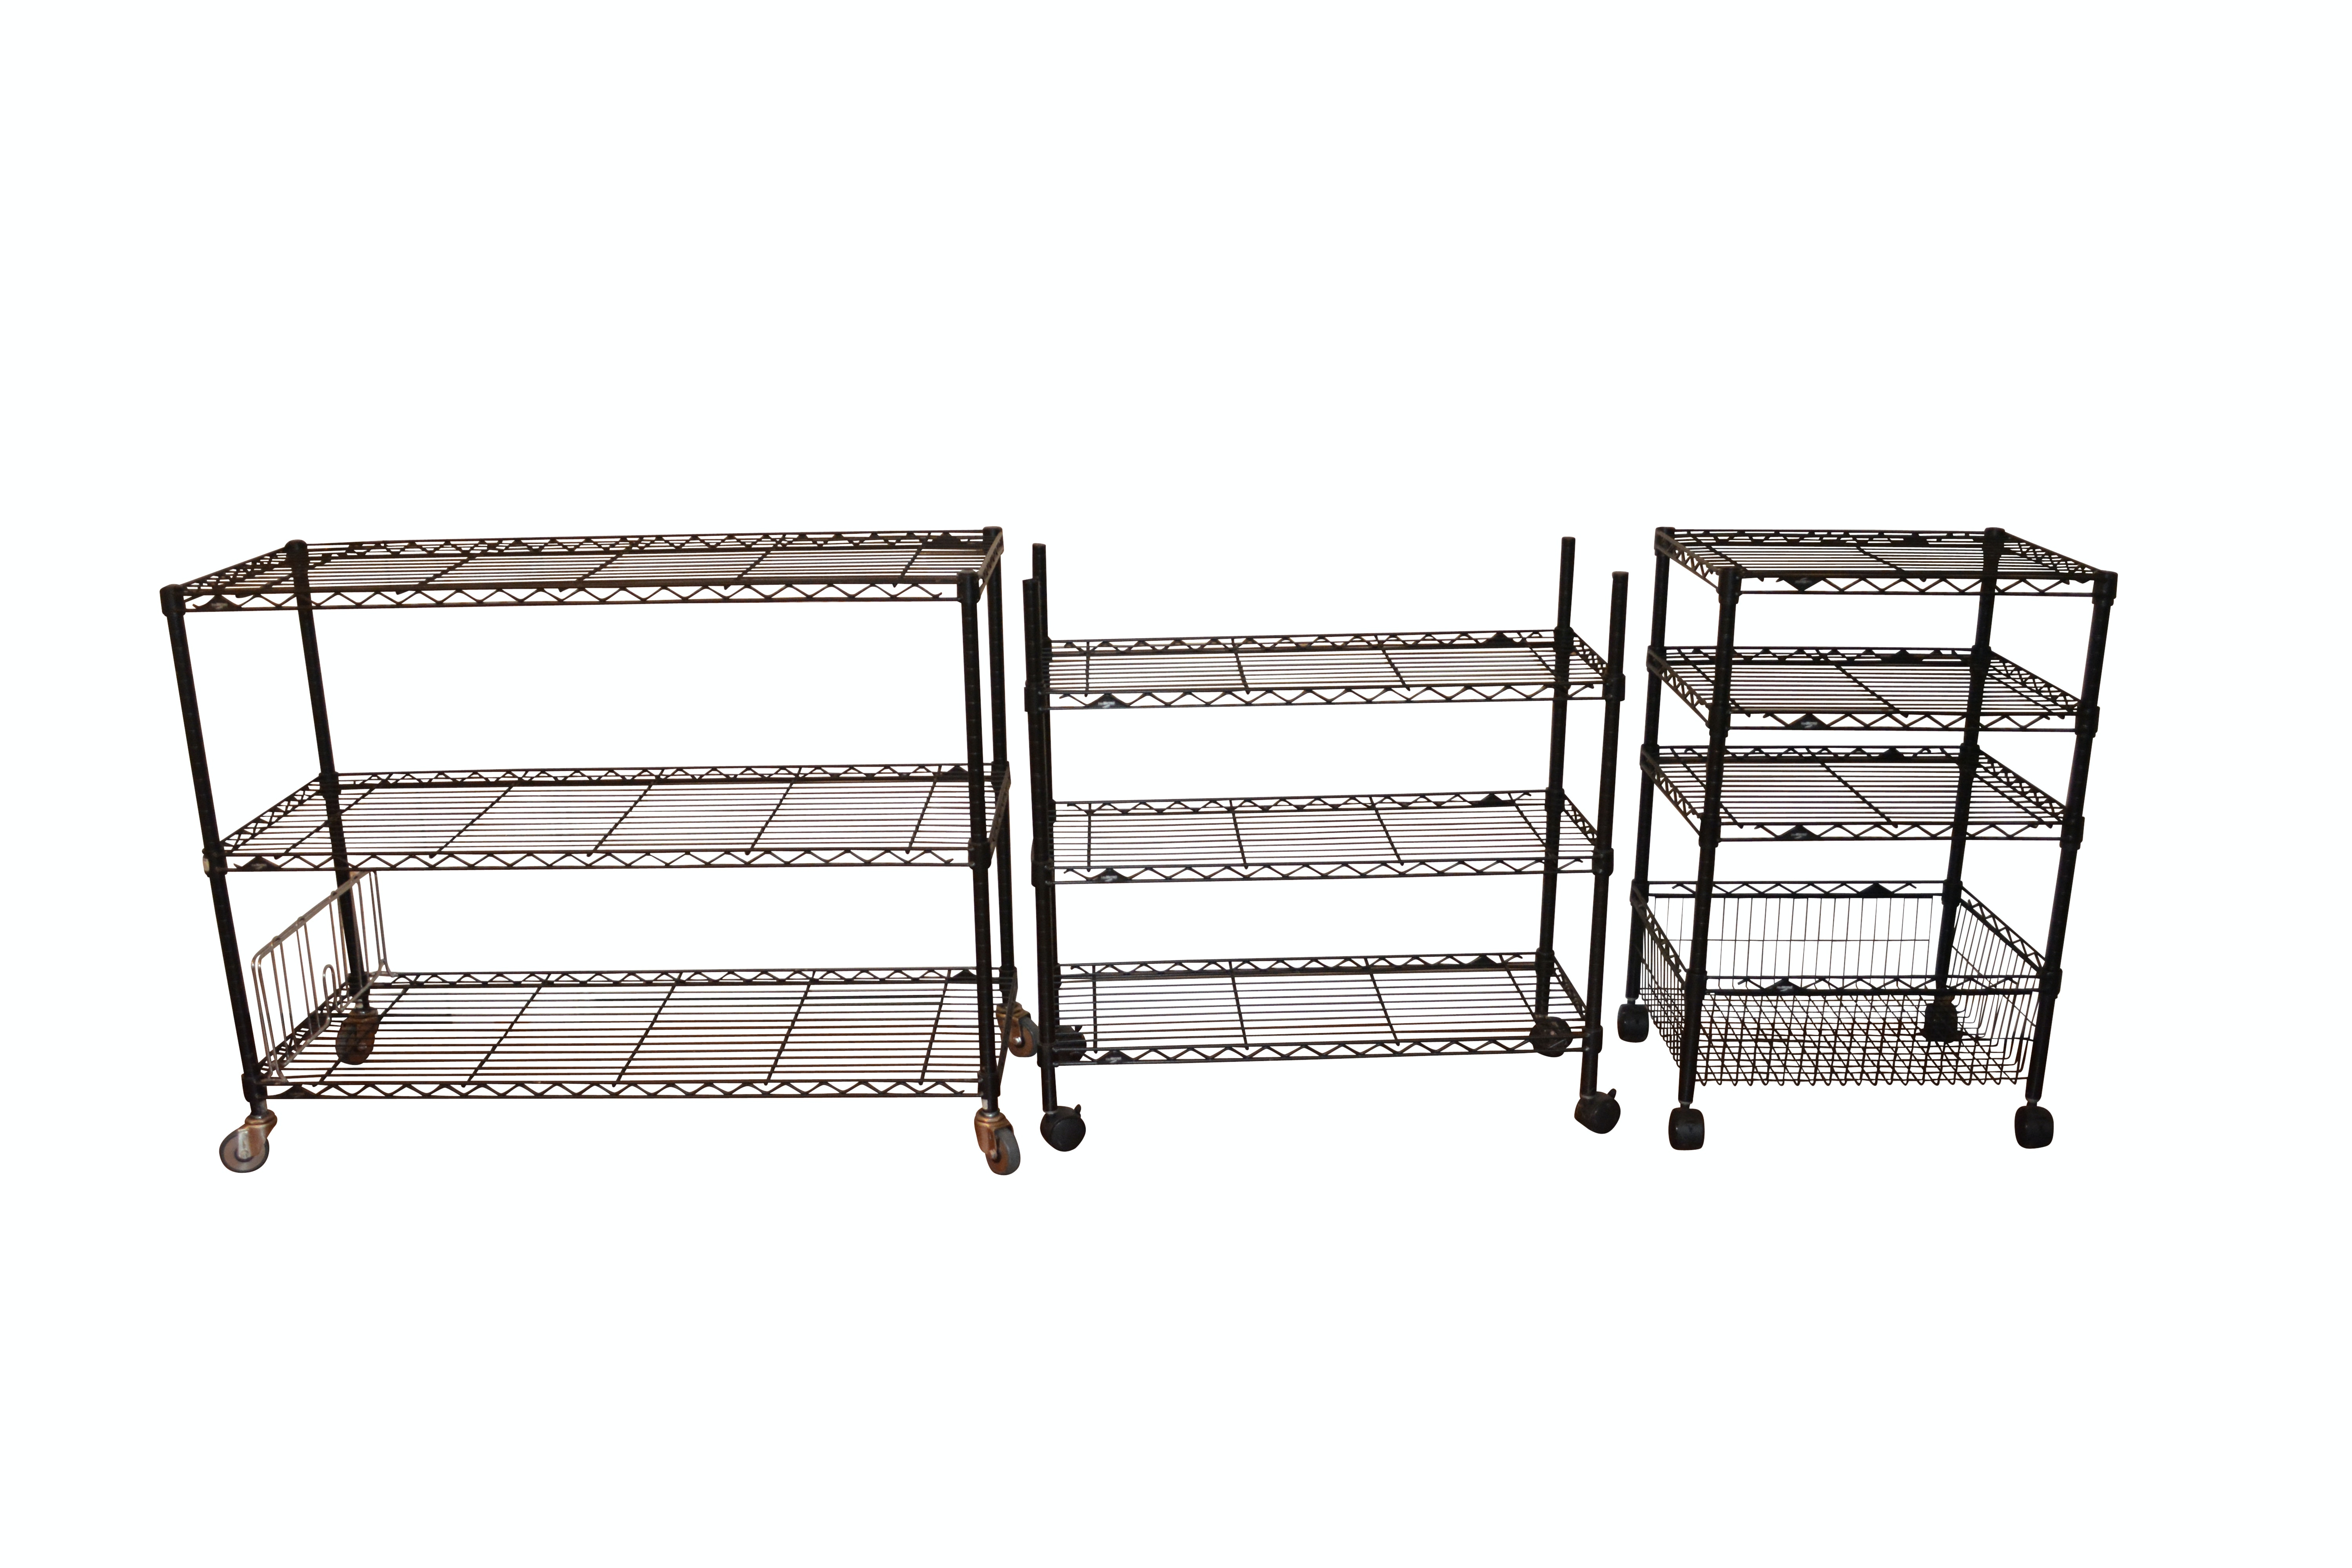 Three Black InterMetro Rolling Shelving and Cart